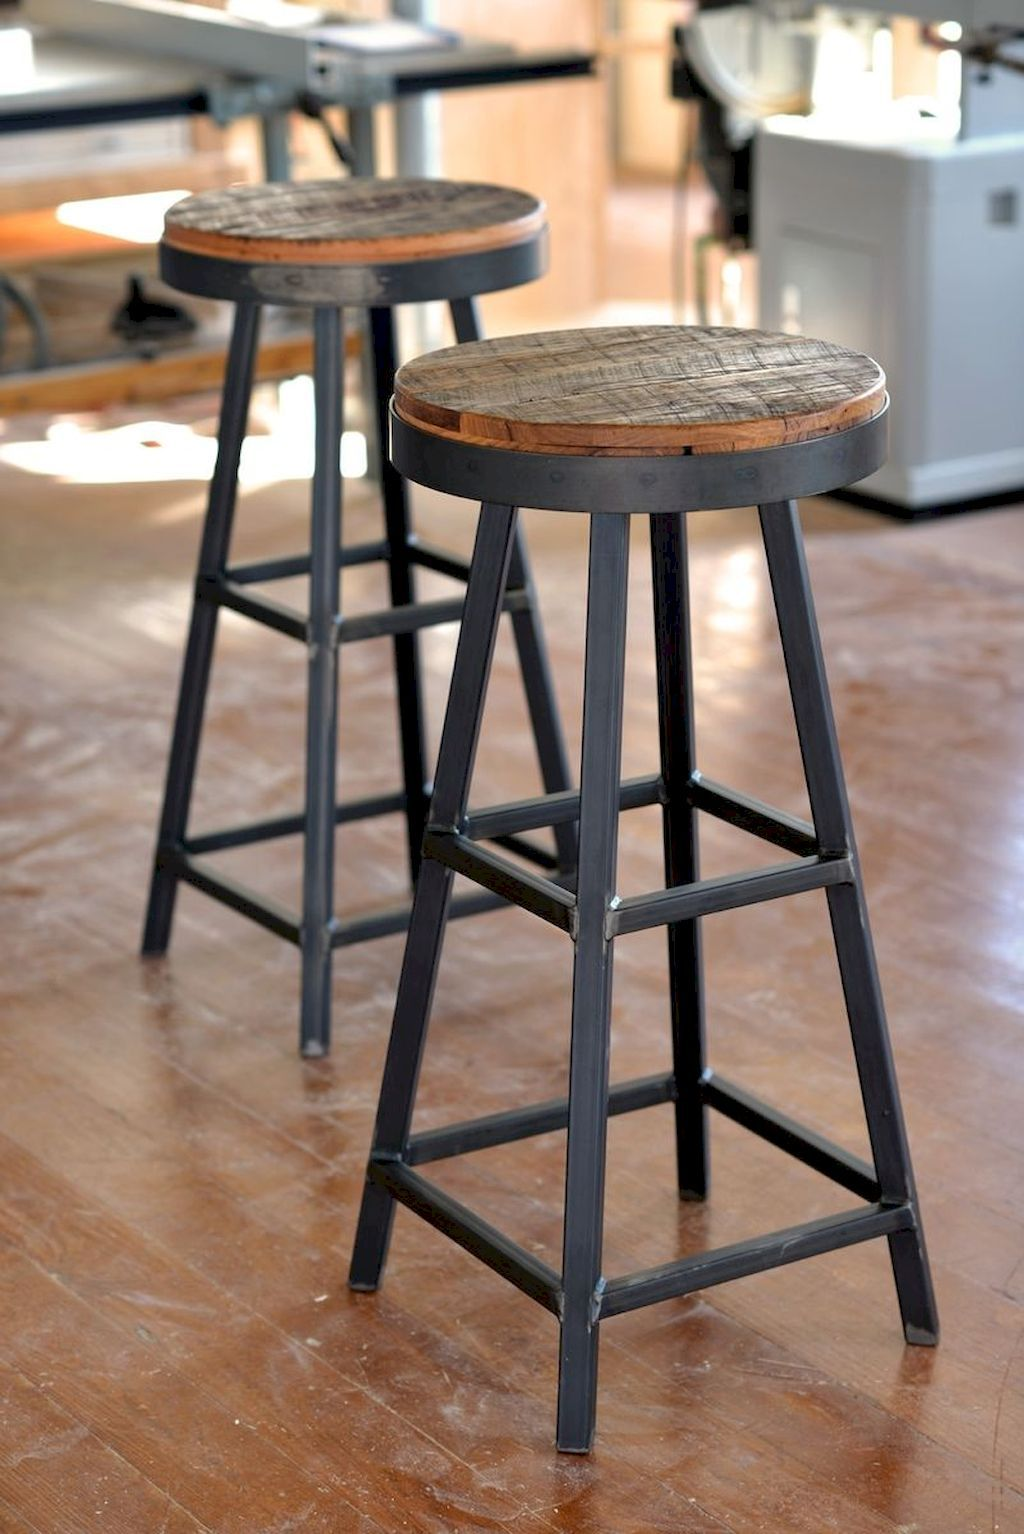 Minimalist Wood Furniture With Stylish Features Metal Bar Stools